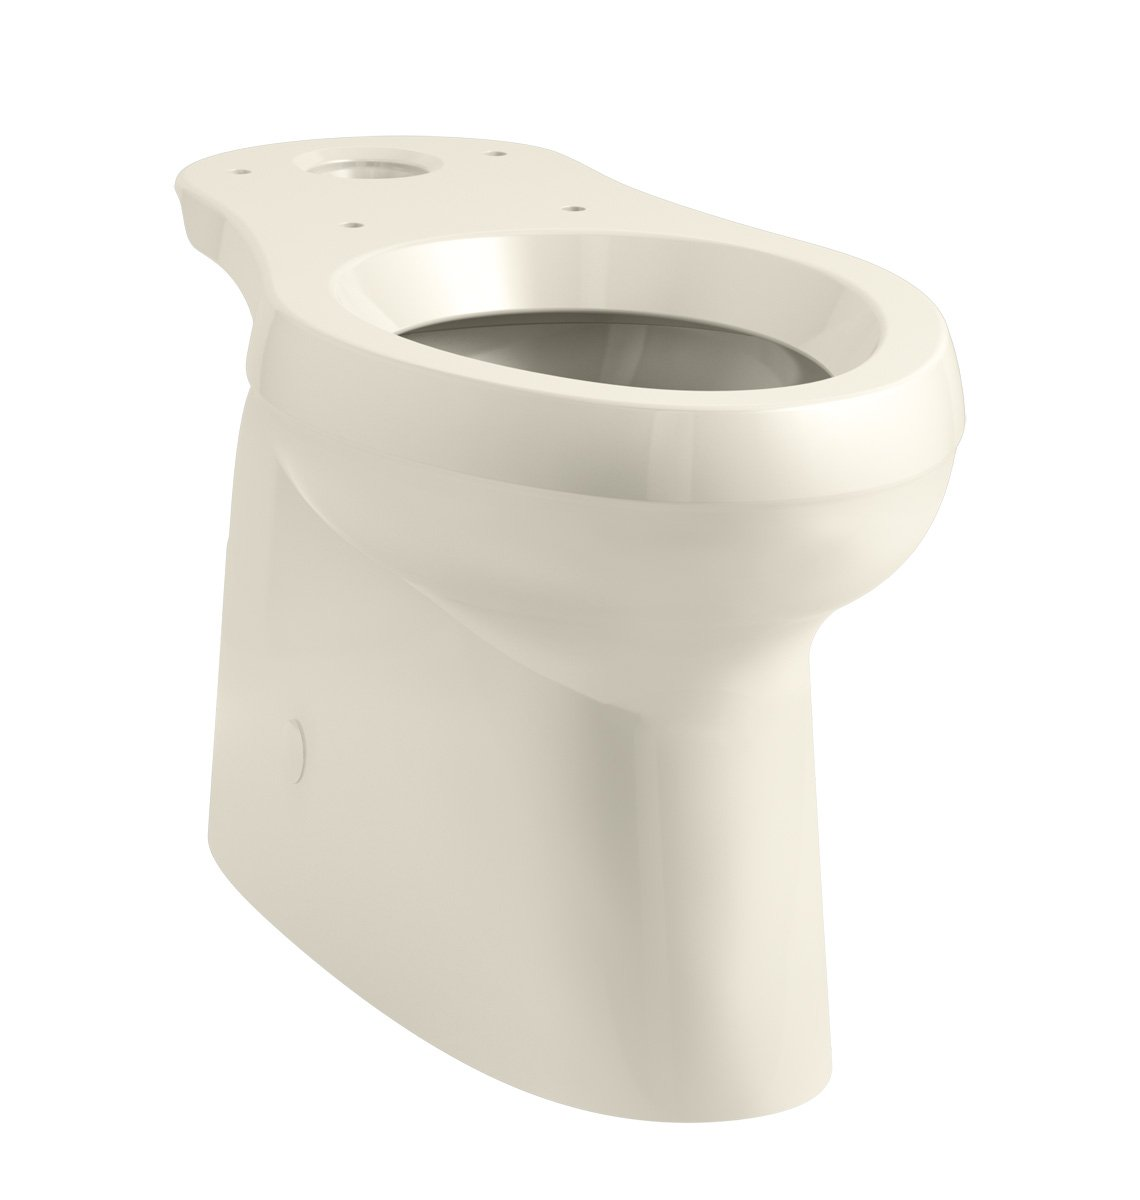 KOHLER 5309-47 Cimarron Comfort Height elongated toilet bowl with skirted trapway Almond